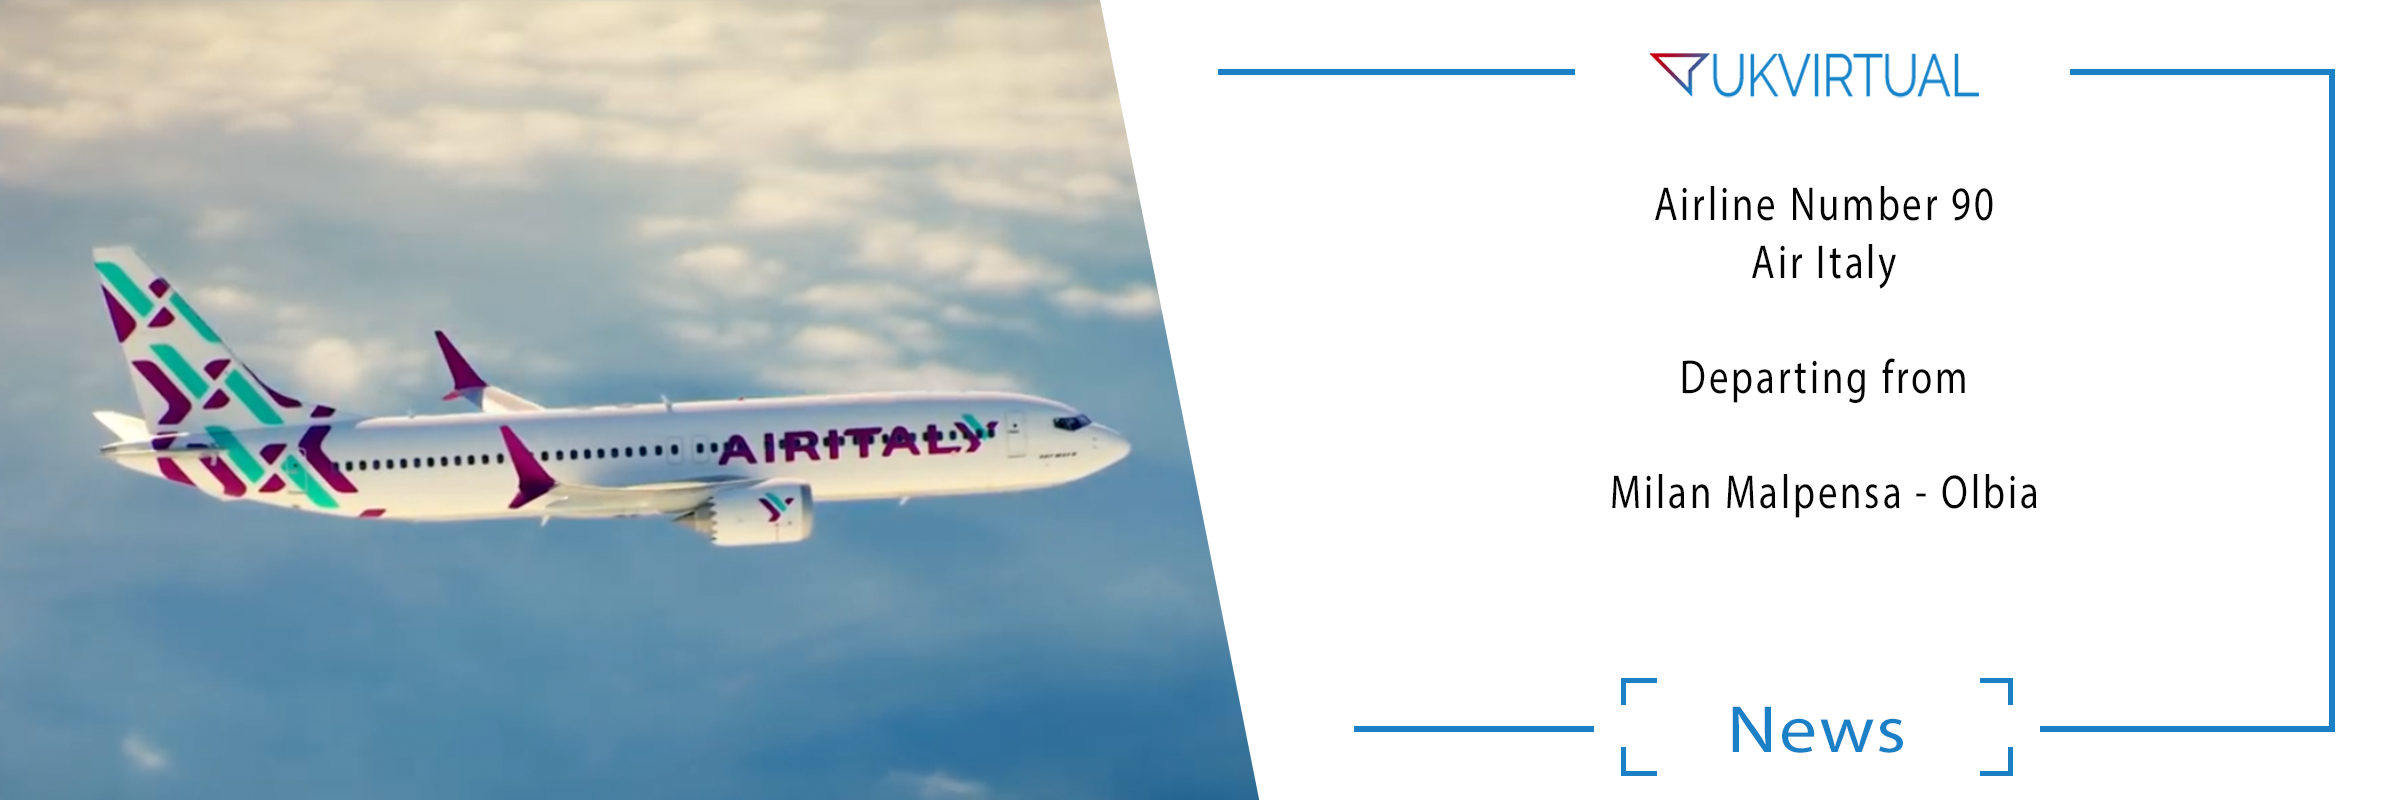 Airline Number 90: Air Italy